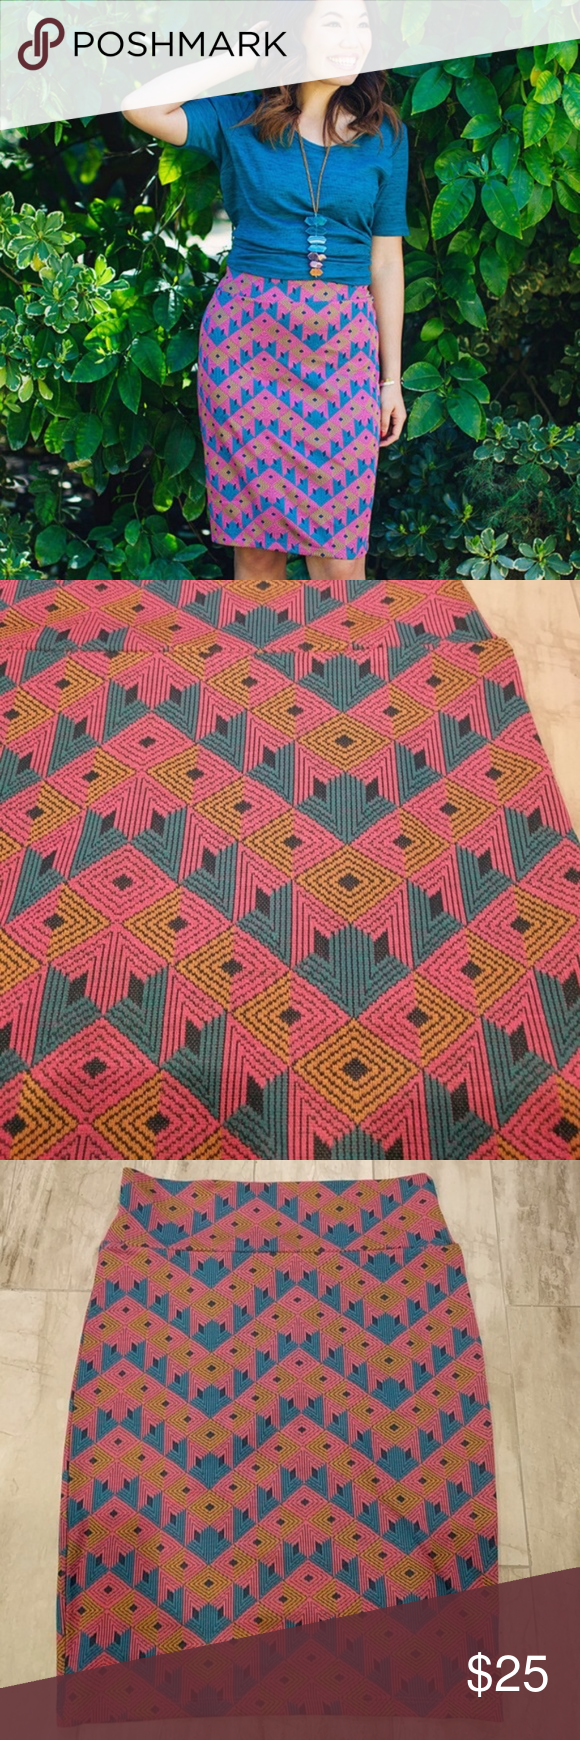 120dbb760 LuLaRoe Cassie Skirt Pink Jacquard Material NWT Lg Size: Large Brand New  With Tags LuLaRoe Cassie Skirt in a fun Pink, Blue, and gold diamond print!